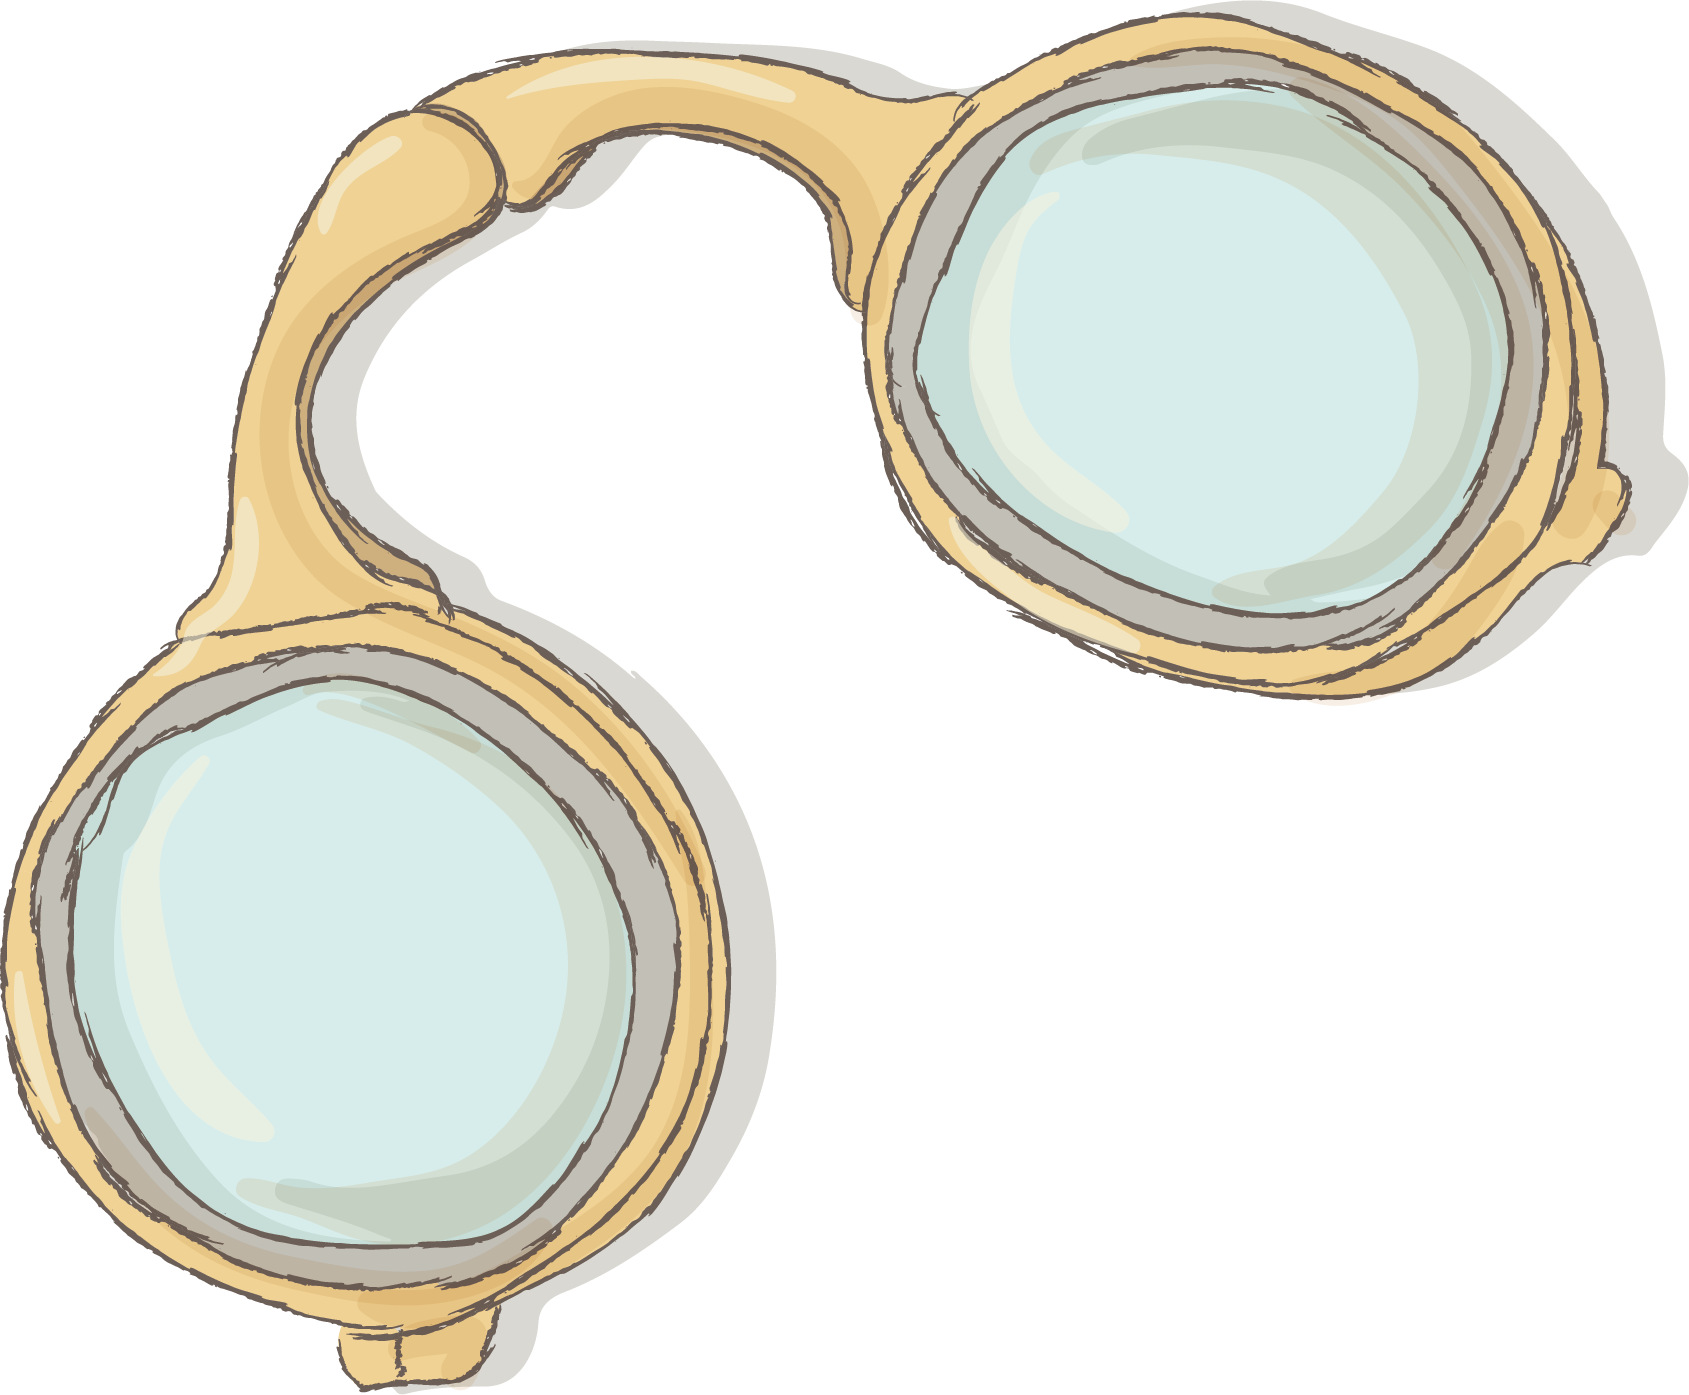 Sunglasses clipart watercolor. Painting submarine transprent png